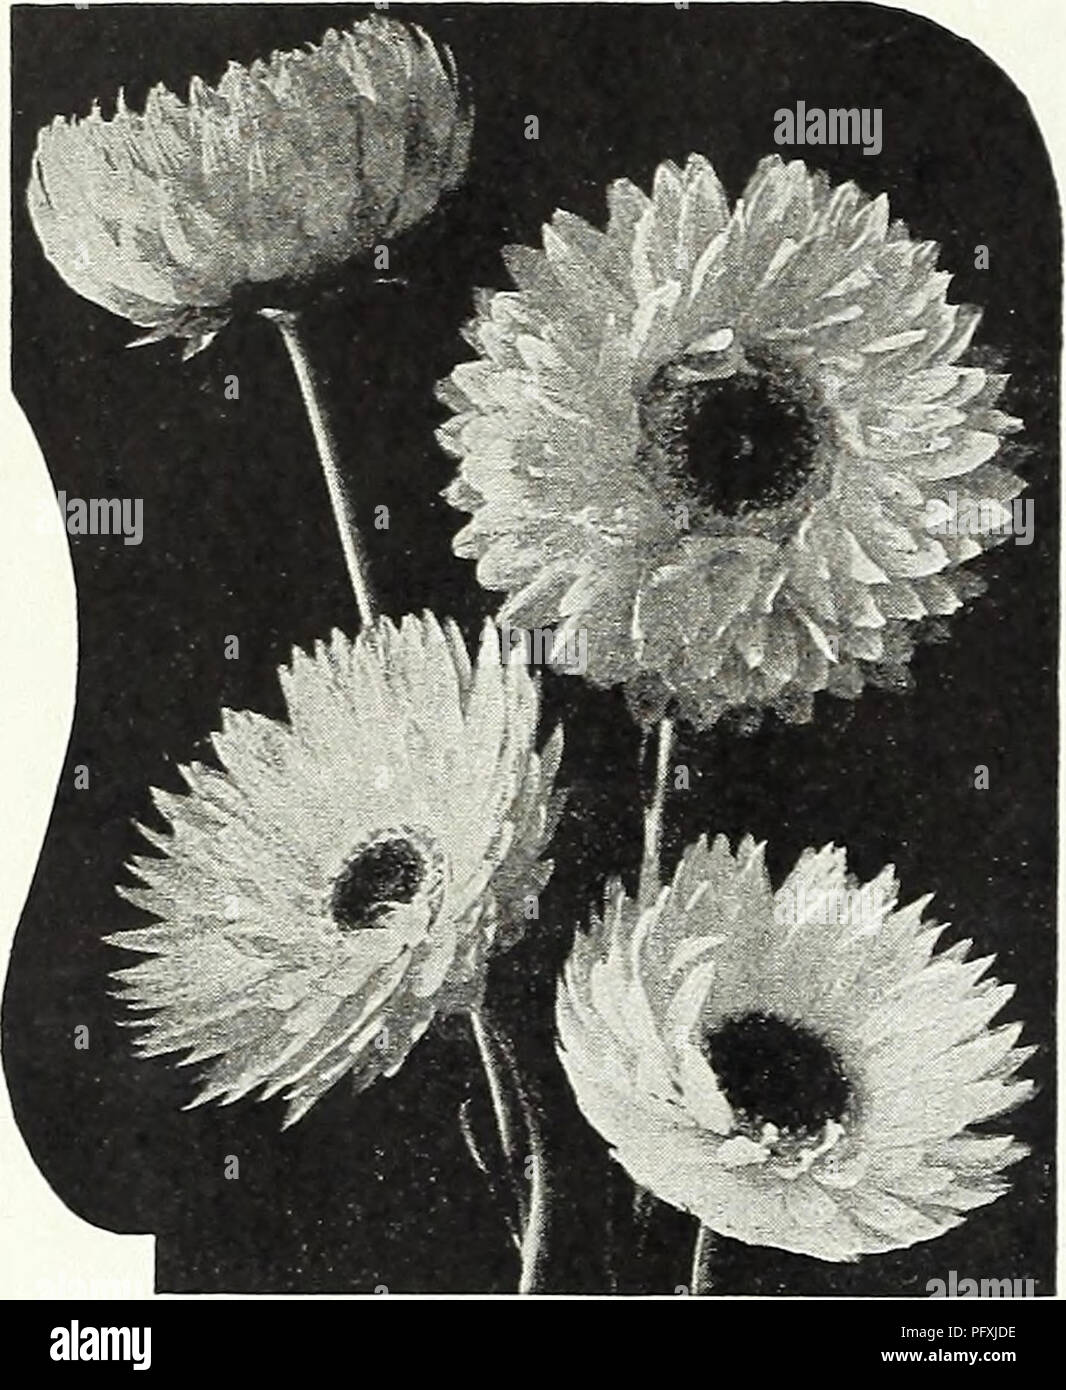 Curries Garden Annual Spring 1936 61st Year Flowers Seeds